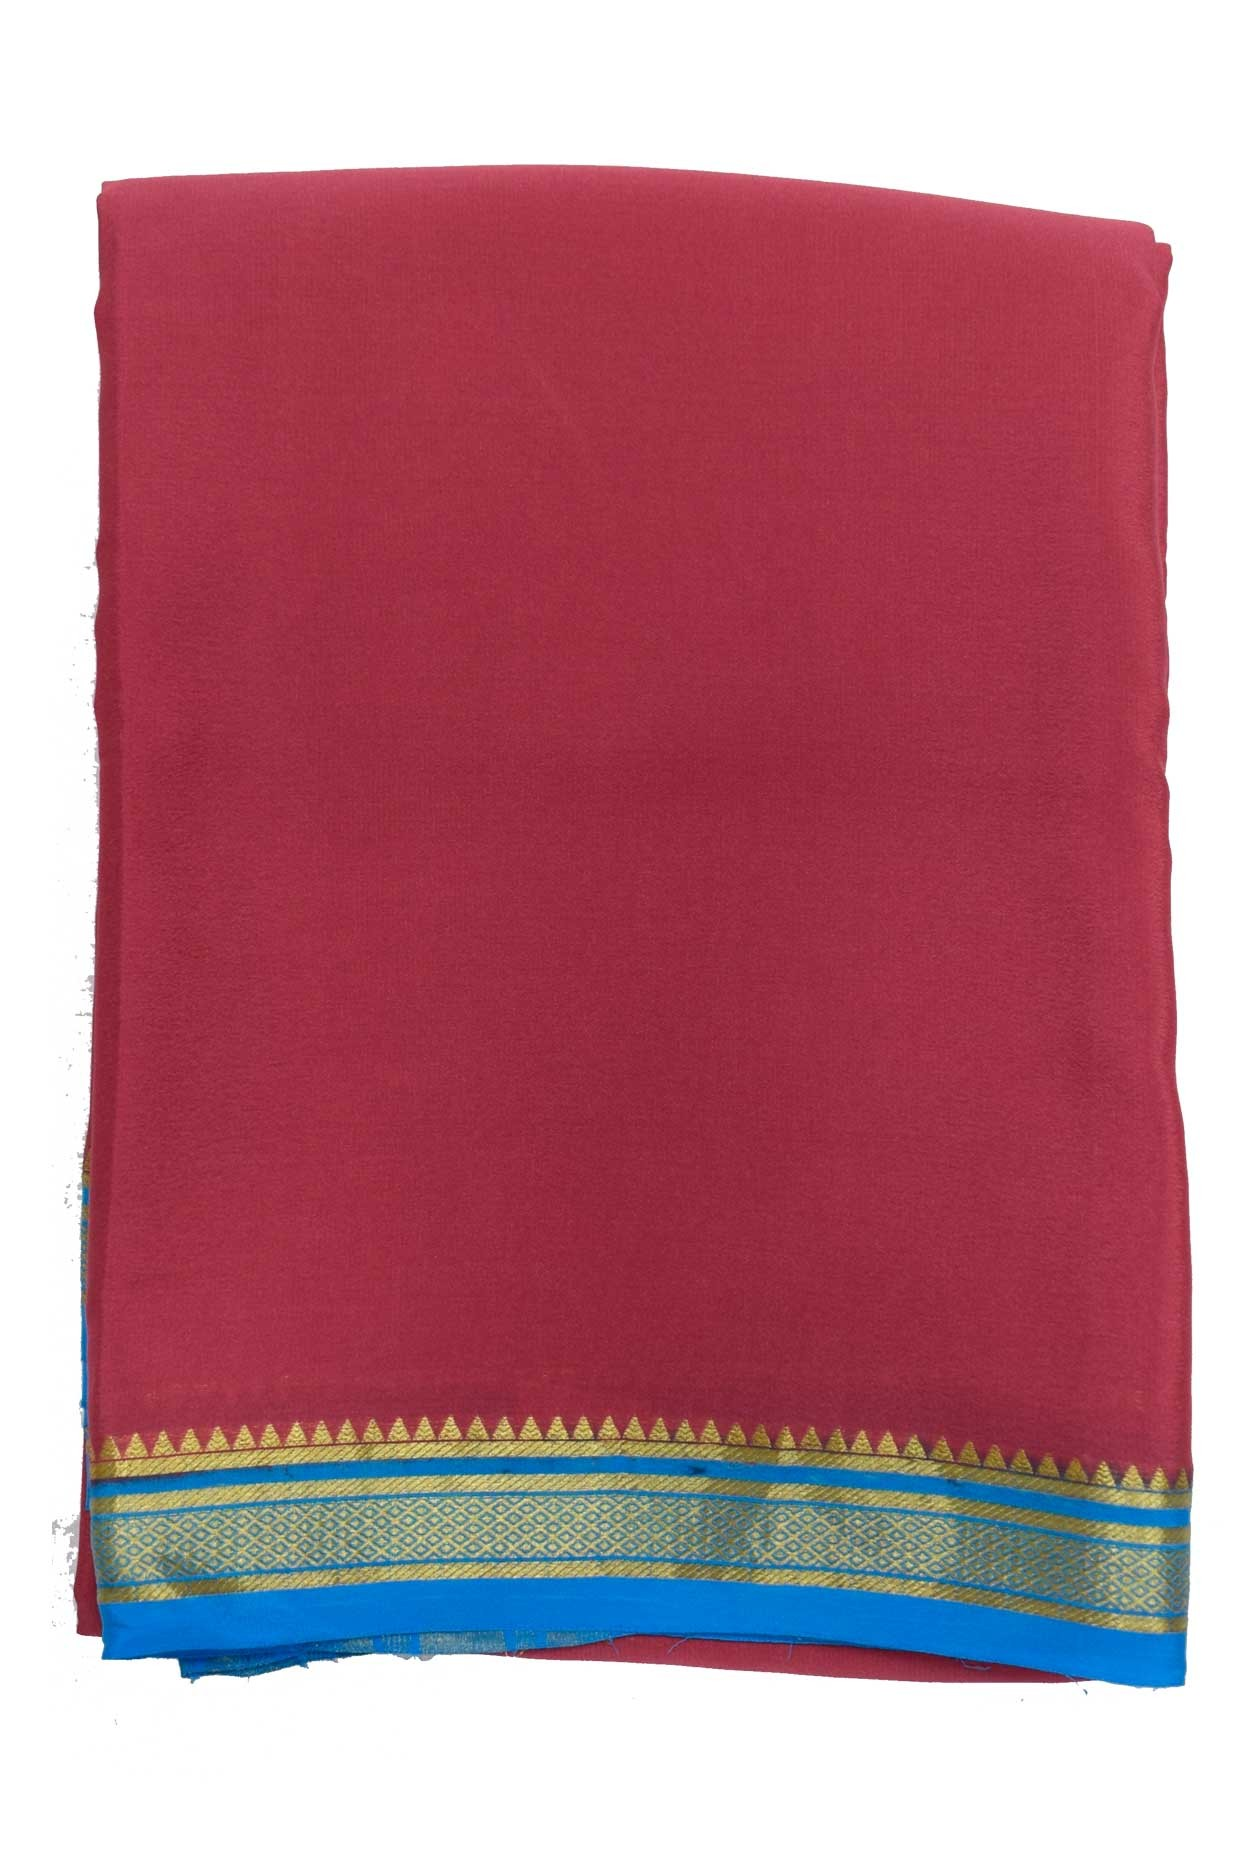 100% Pure Crape Mysore Traditional Silk Saree SC-38